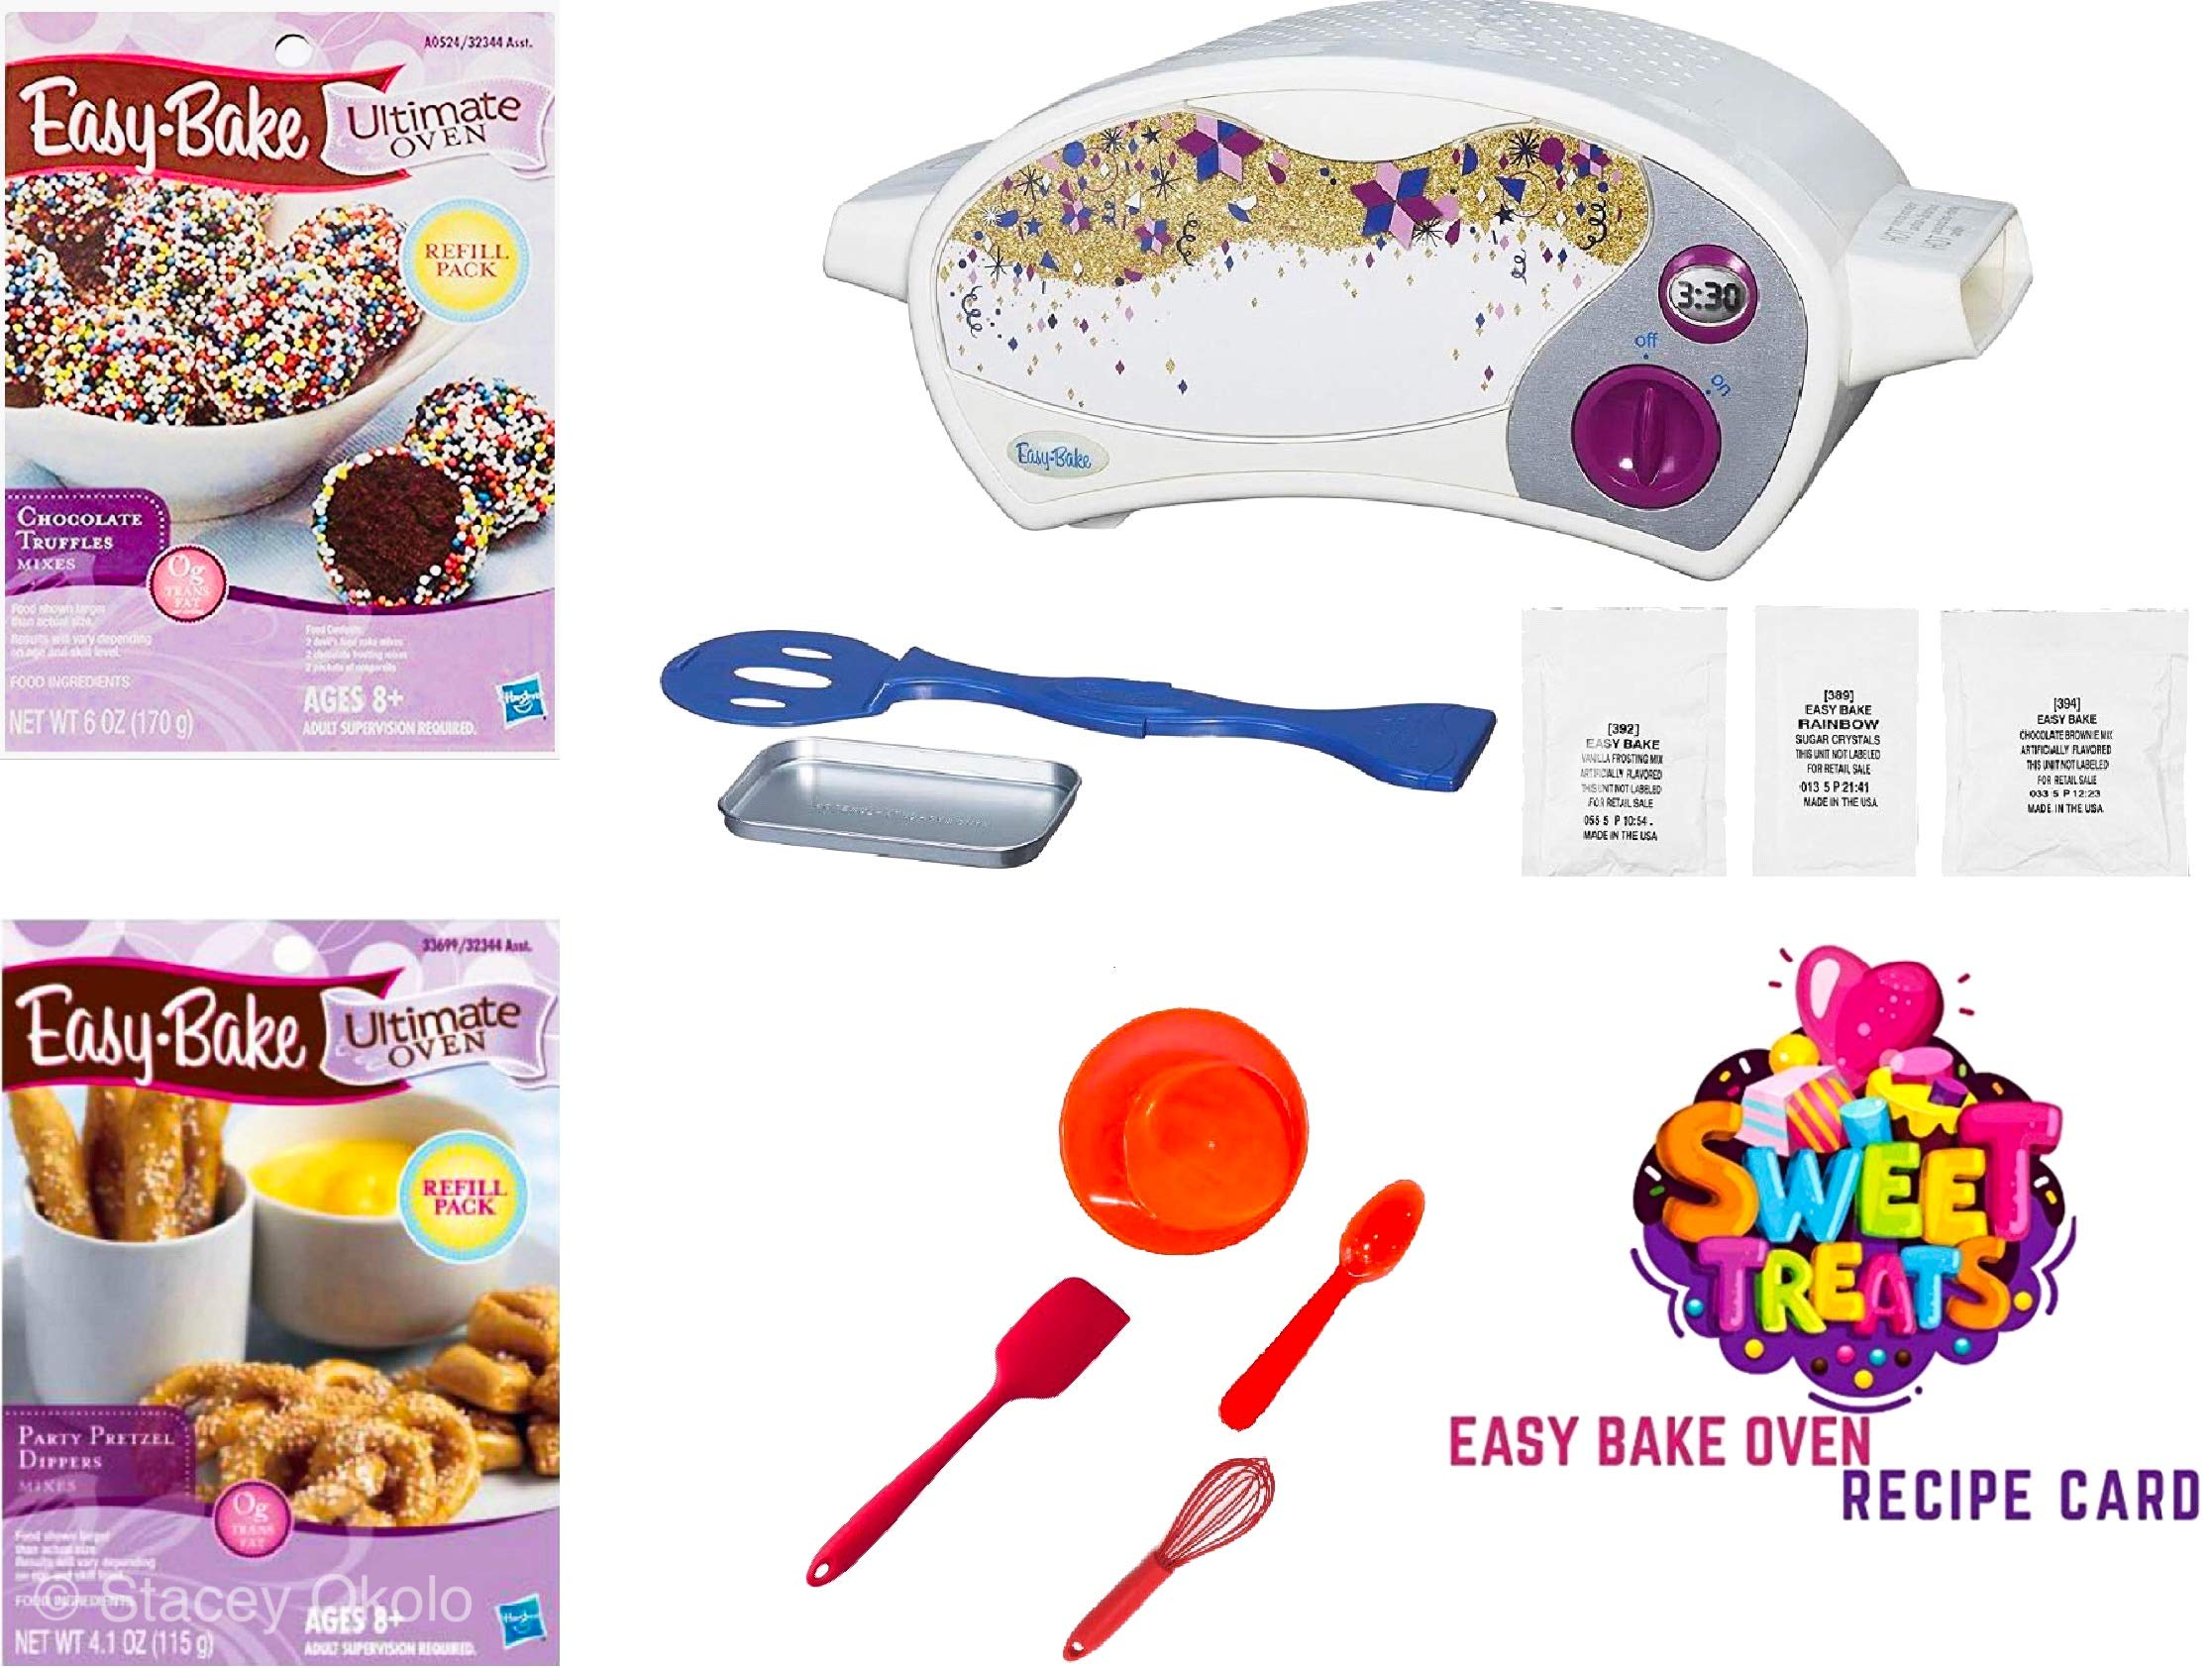 Easy Bake Ultimate Oven Baking Star Edition + 2 Oven Refill Mixes + 2 Sweet Treats Tasty Oven Recipes + Mixing Bowl, Spoon, Spatula, Whisk (8 Total Items) (red)